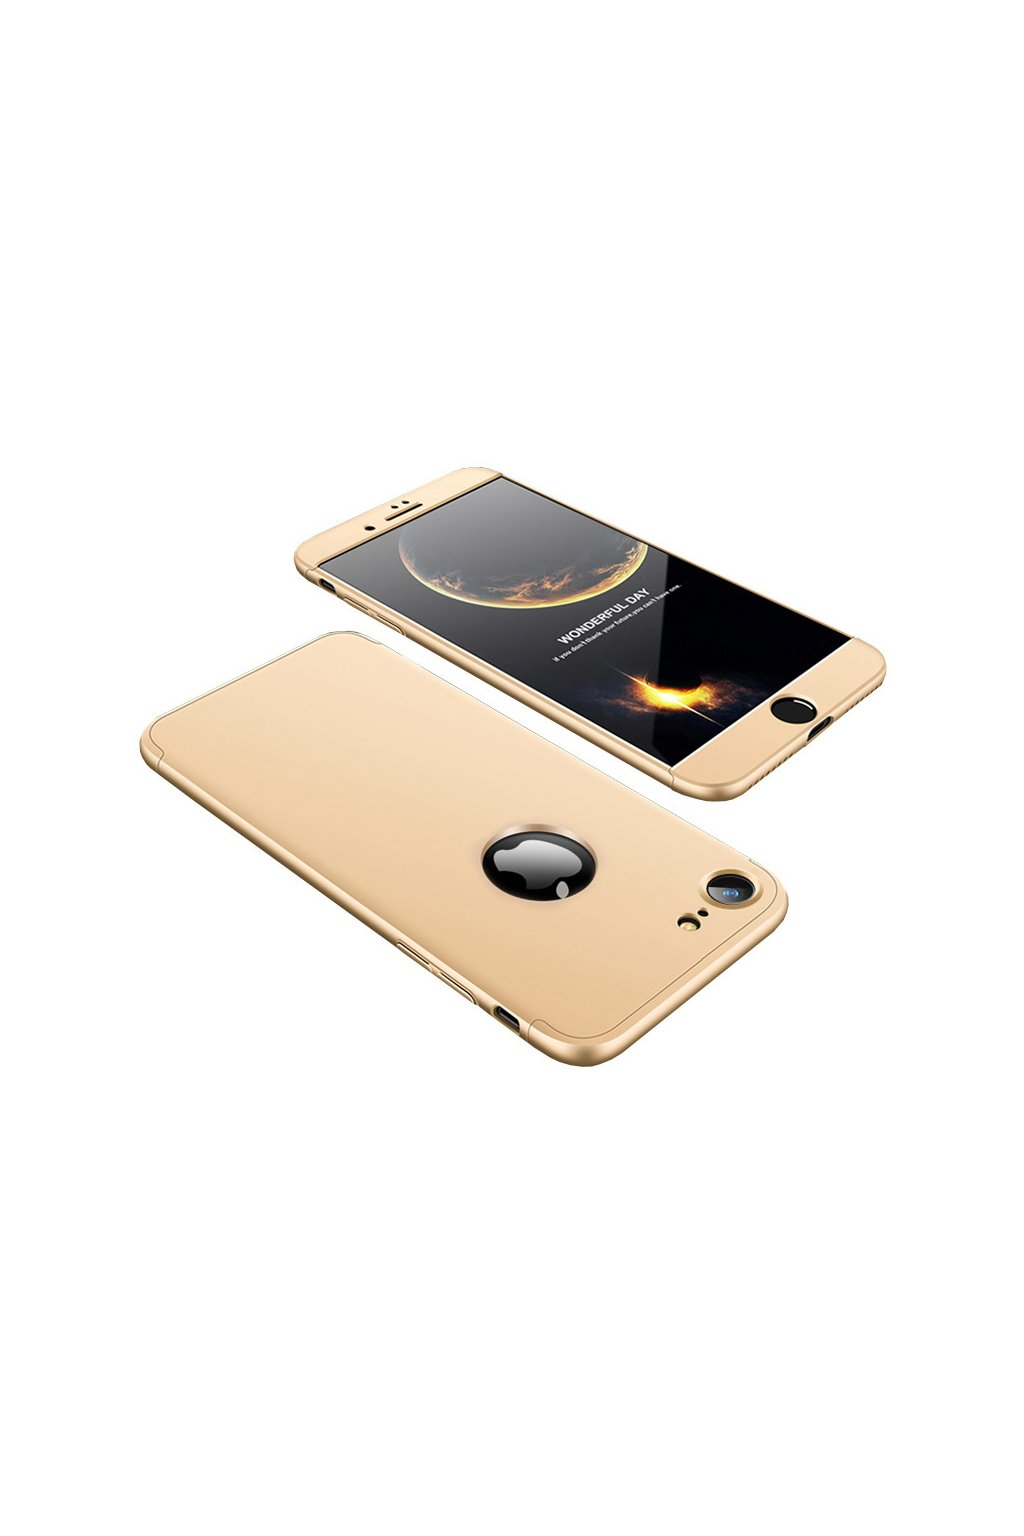 eng pl 360 Protection Front and Back Case Full Body Cover iPhone 8 gold 35303 7